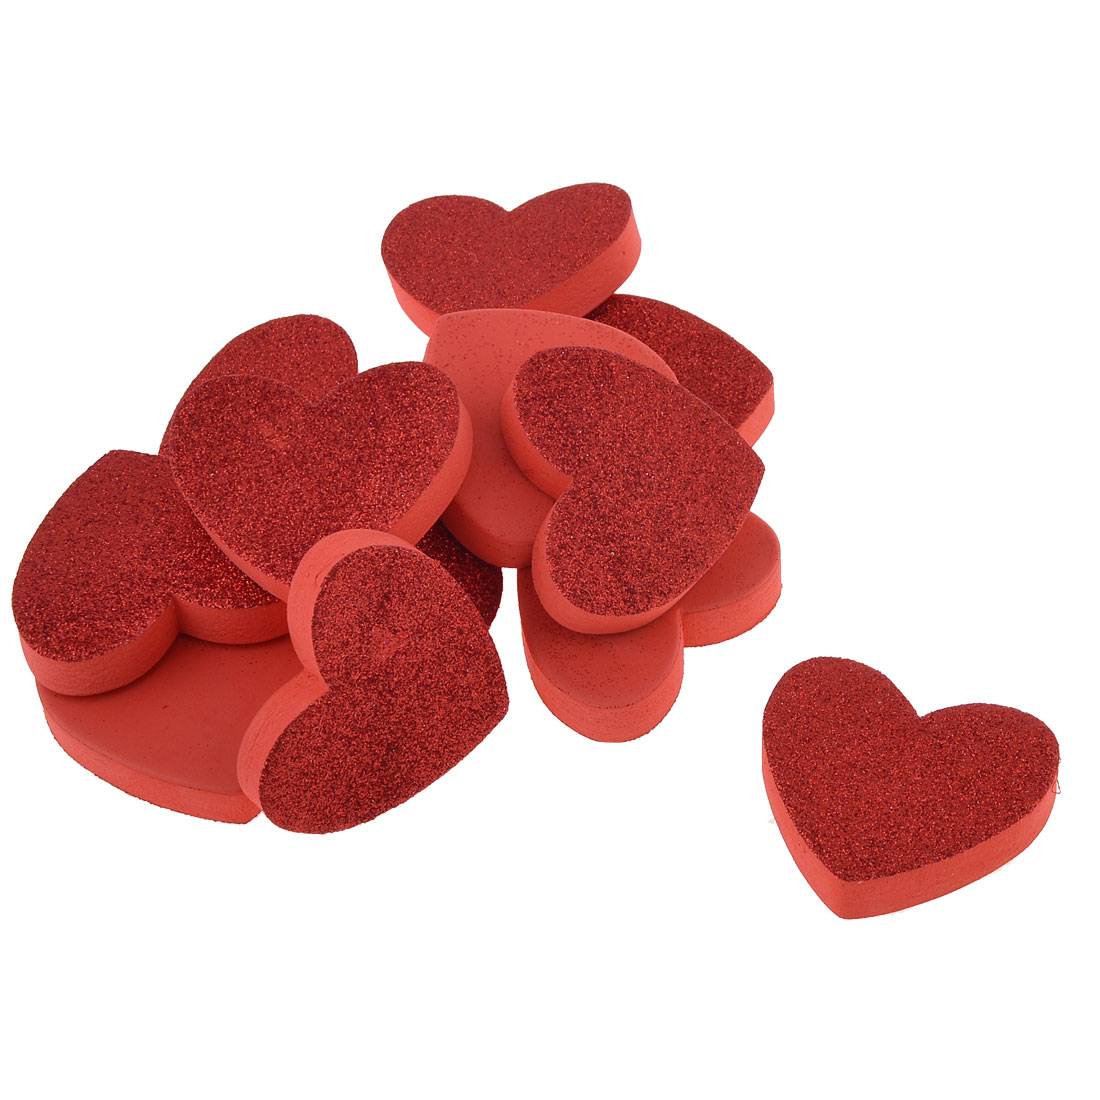 Room Decoration Adhesive Foam Heart Shaped 3D Wall Sticker Red 12 Pcs